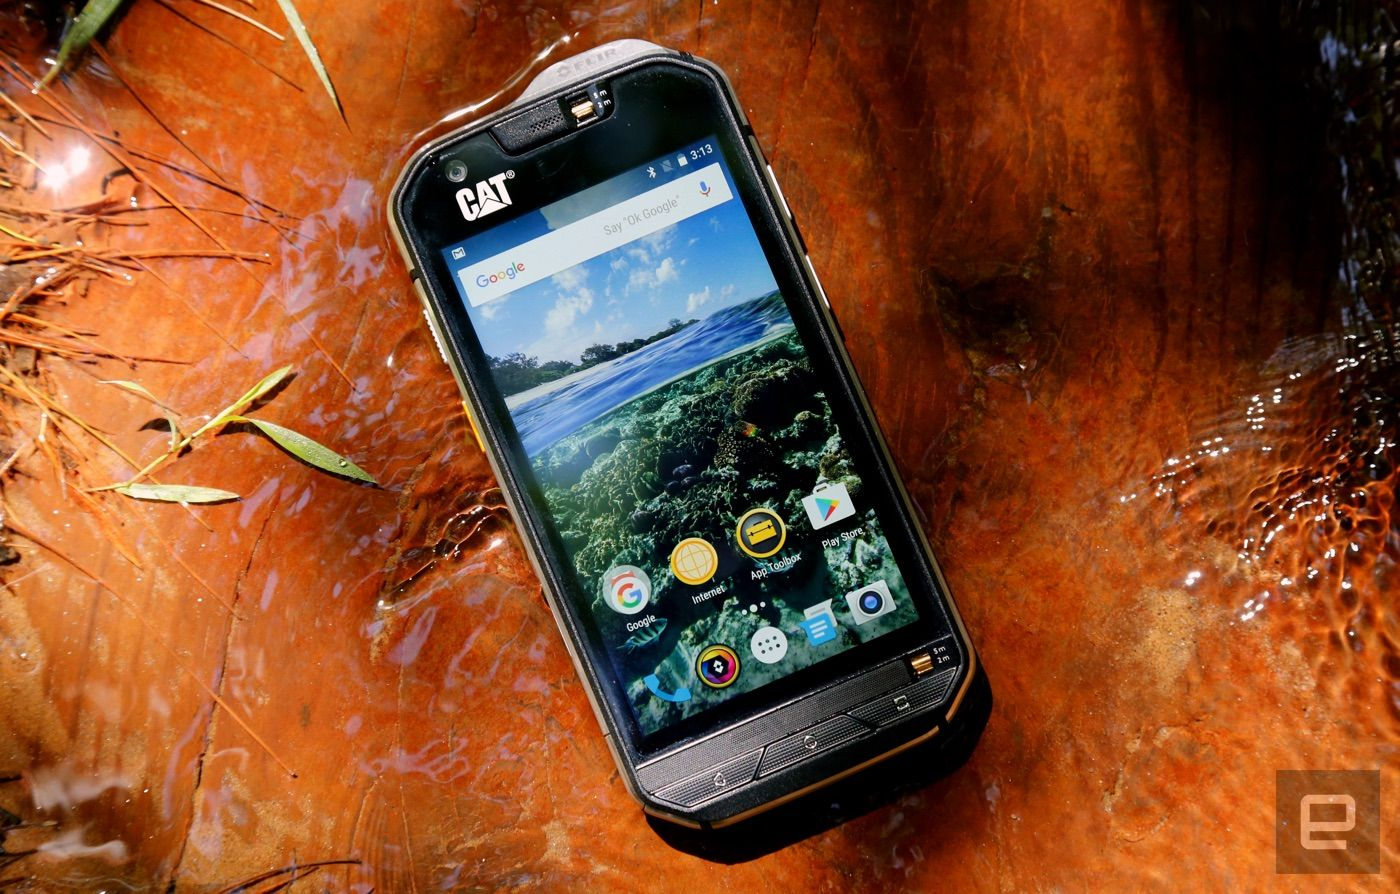 I accidentally broke the superrugged Cat S60 smartphone